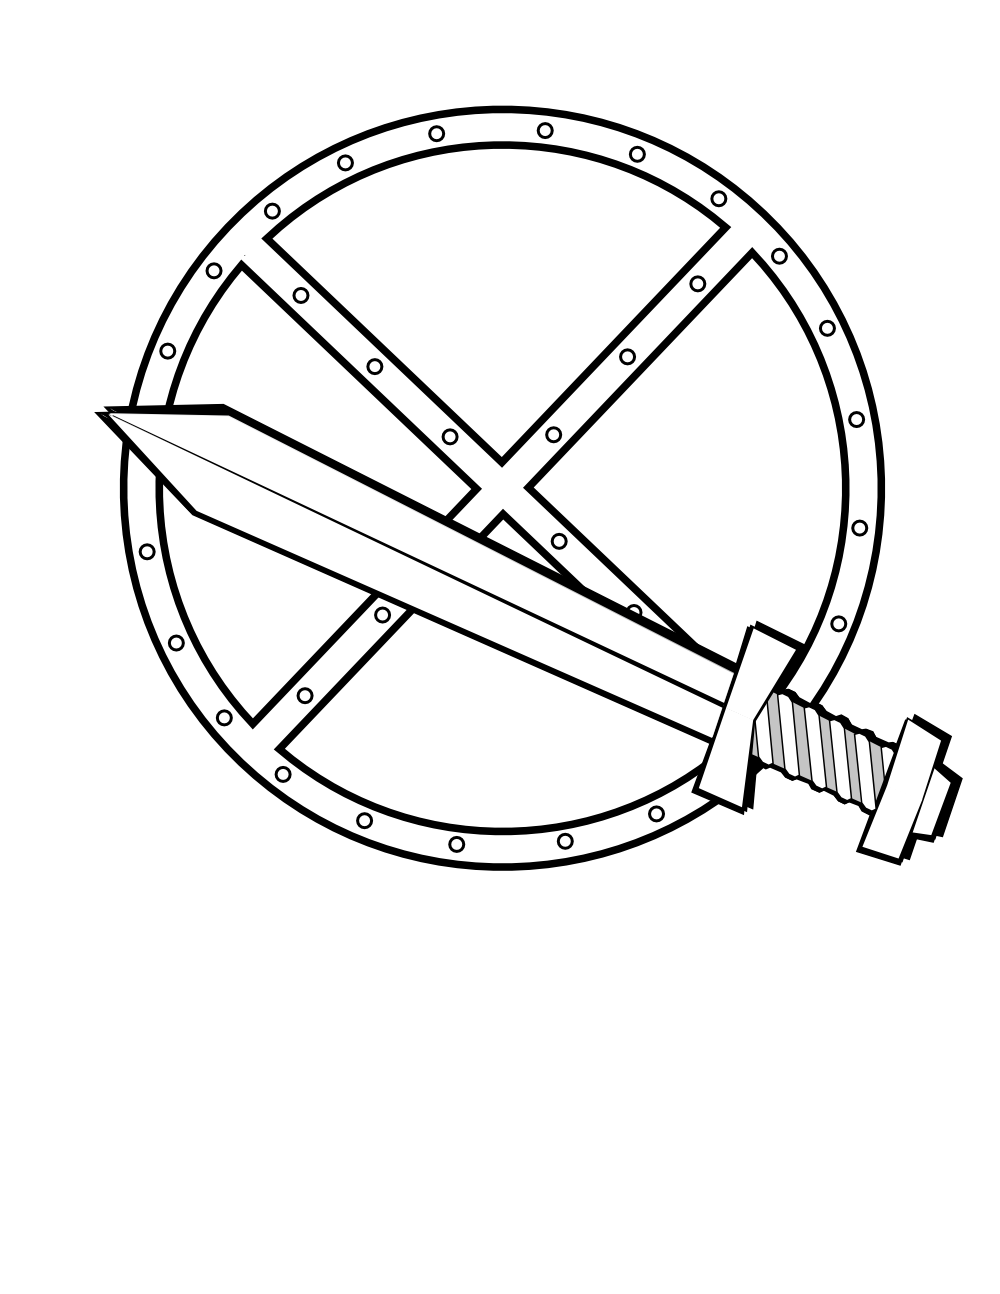 Support drawing sword. Onlinelabels clip art round